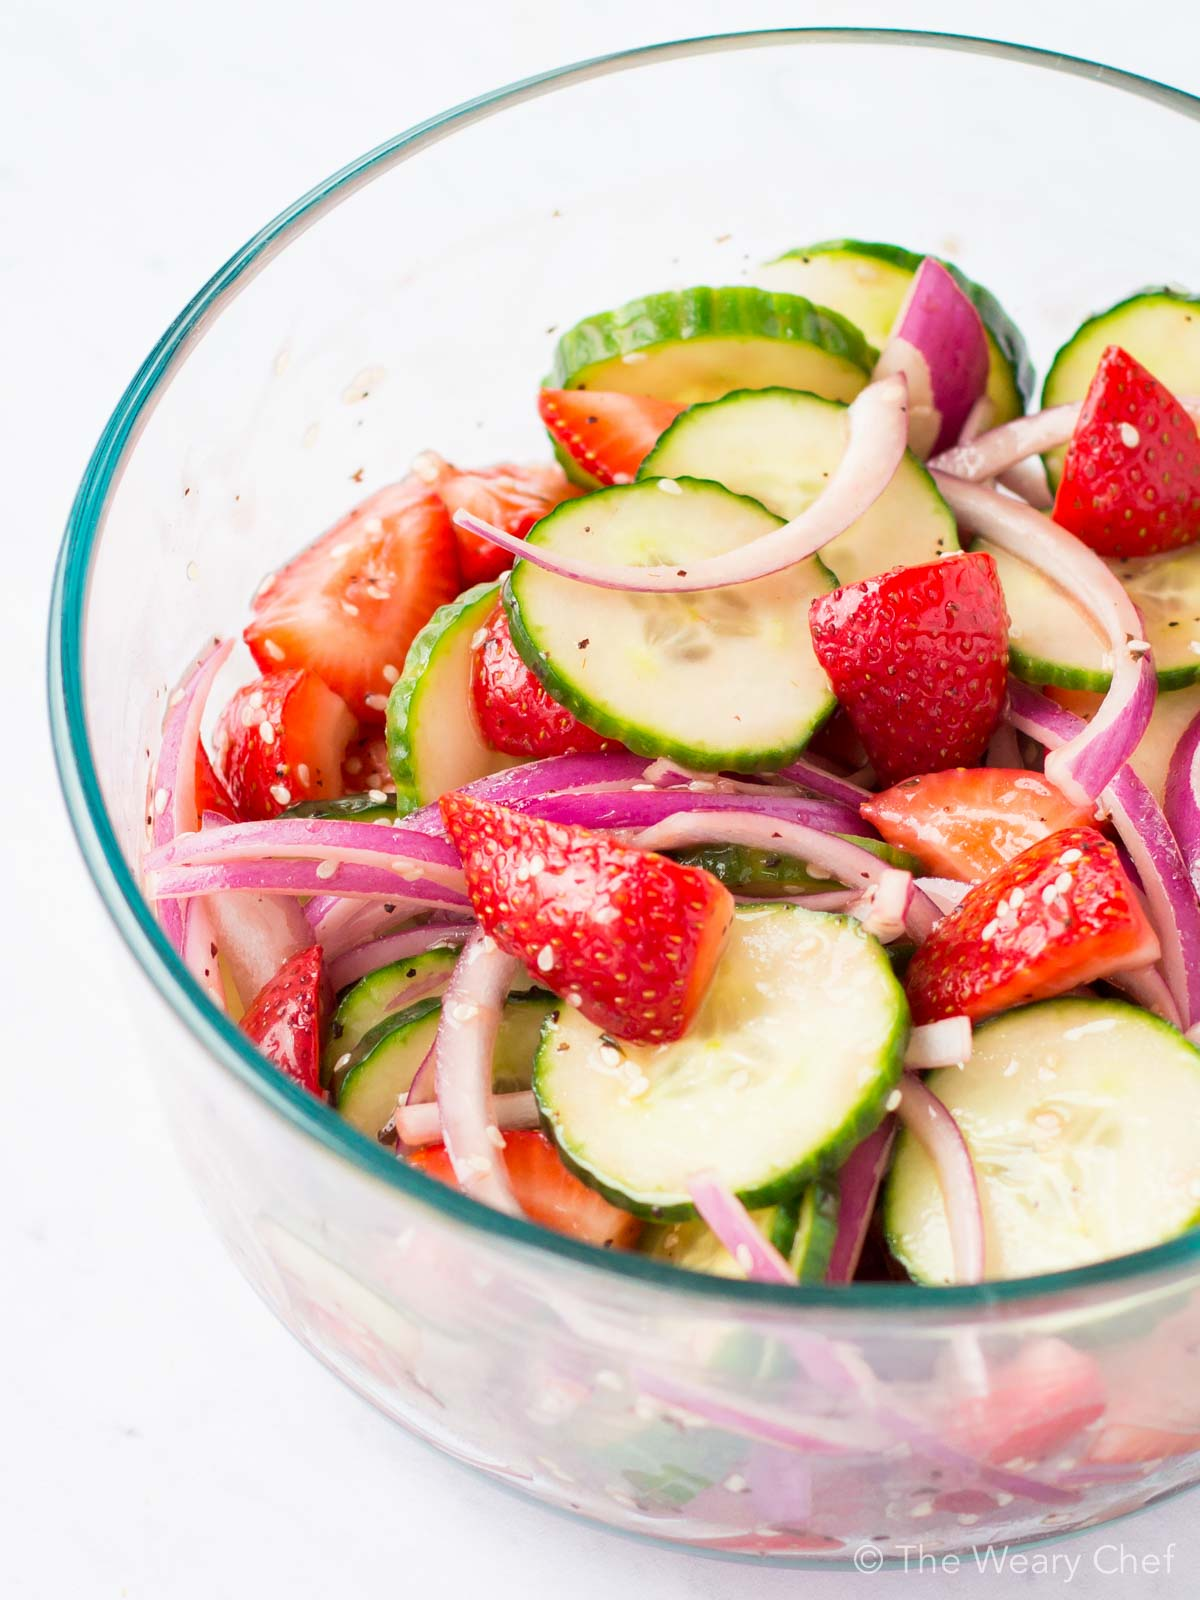 This strawberry cucumber salad with balsamic cabernet dressing tastes like Summer!